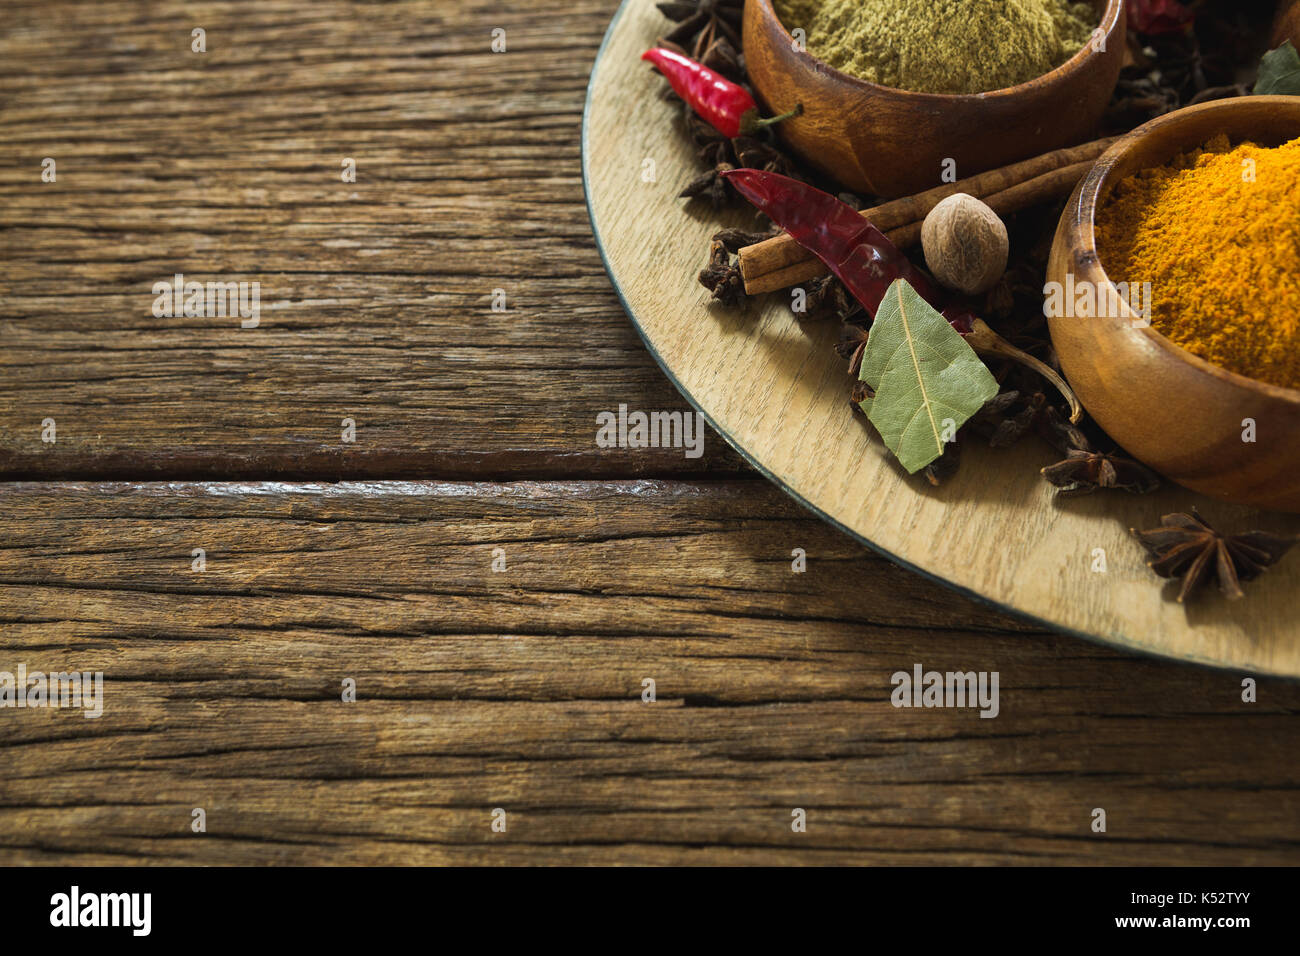 Overhead of various spices arranged in plate - Stock Image